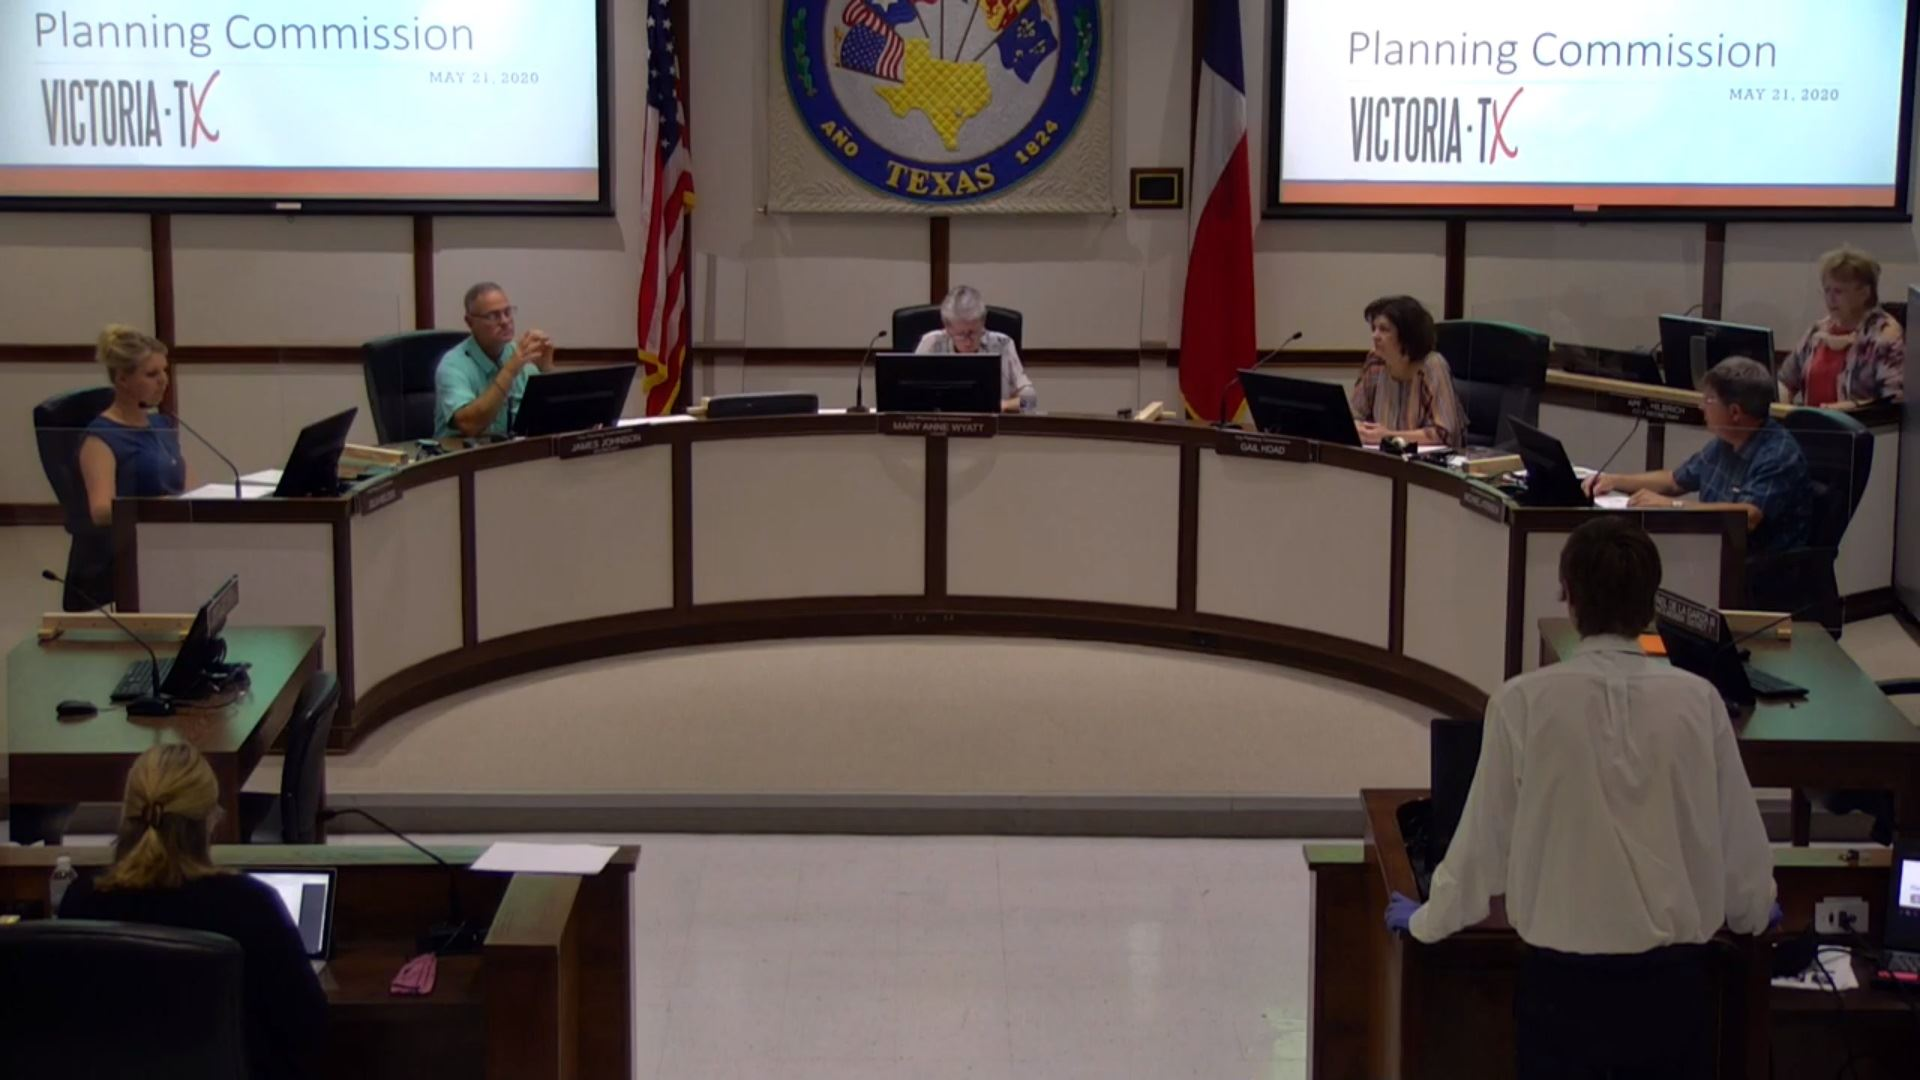 Planning Commission meeting at Council chambers